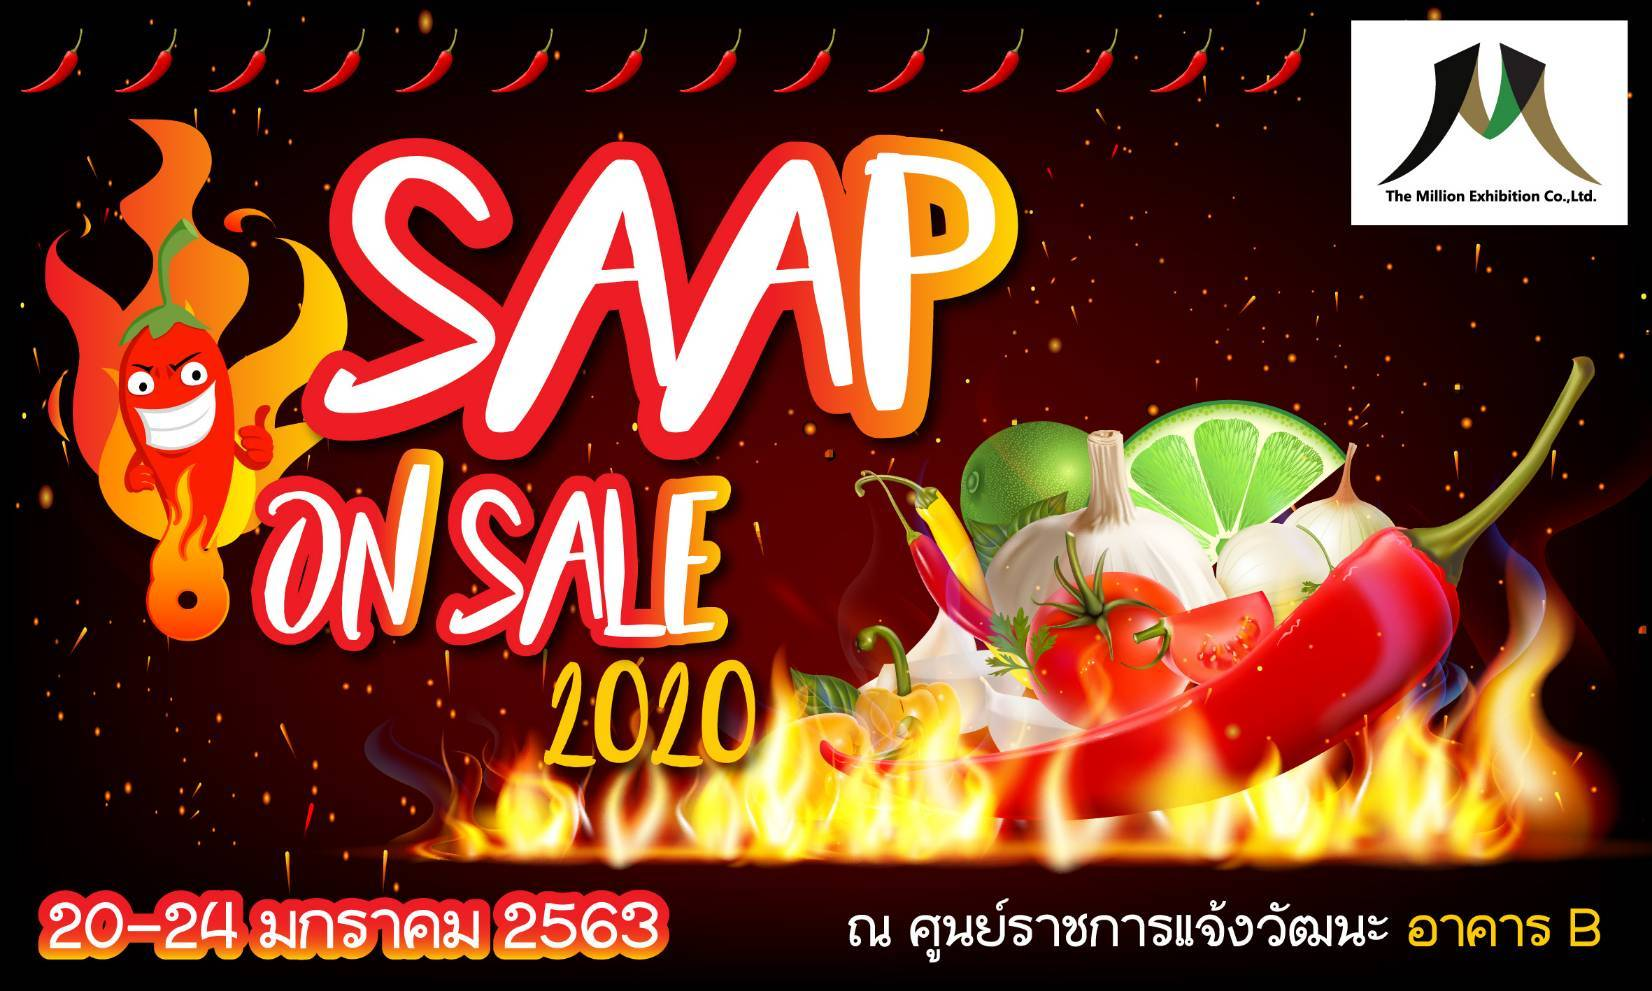 SAAP ON SALE 2020